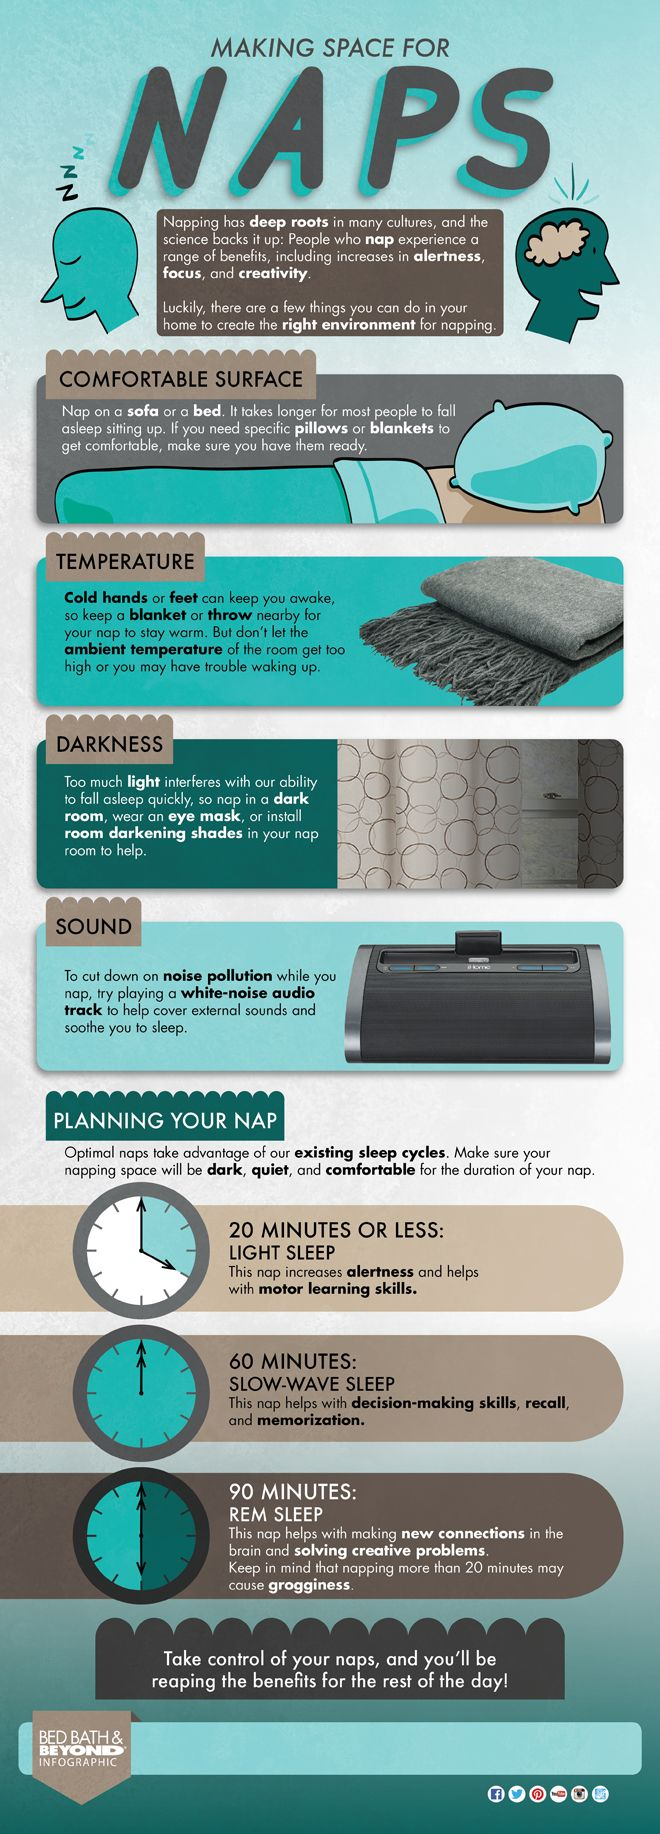 best images about sleep sleep deprivation 17 best images about sleep sleep deprivation sleep and health